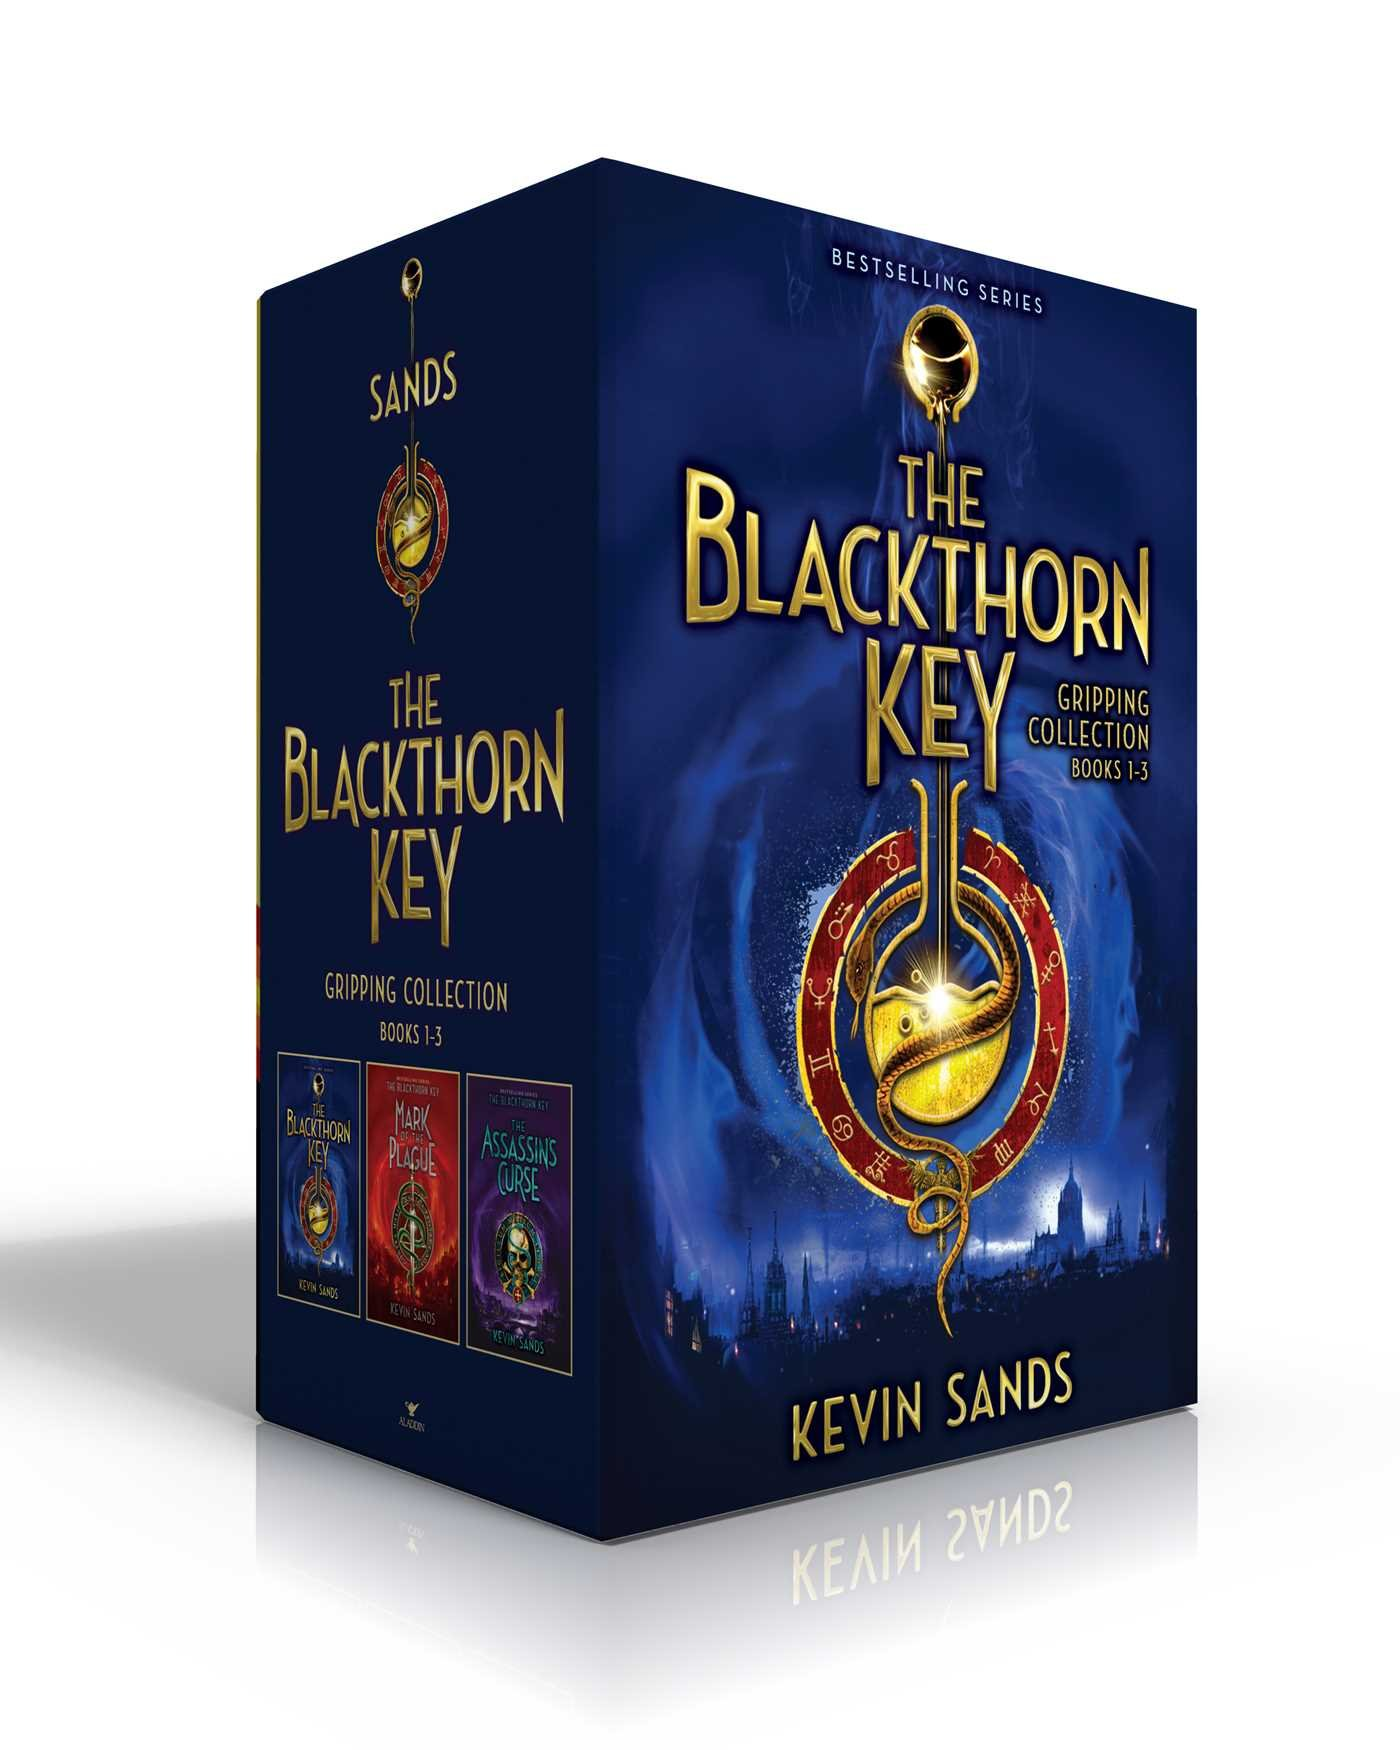 The Blackthorn Key Gripping Collection Books 1-3: The Blackthorn Key; Mark of the Plague; The Assassin's Curse by Aladdin